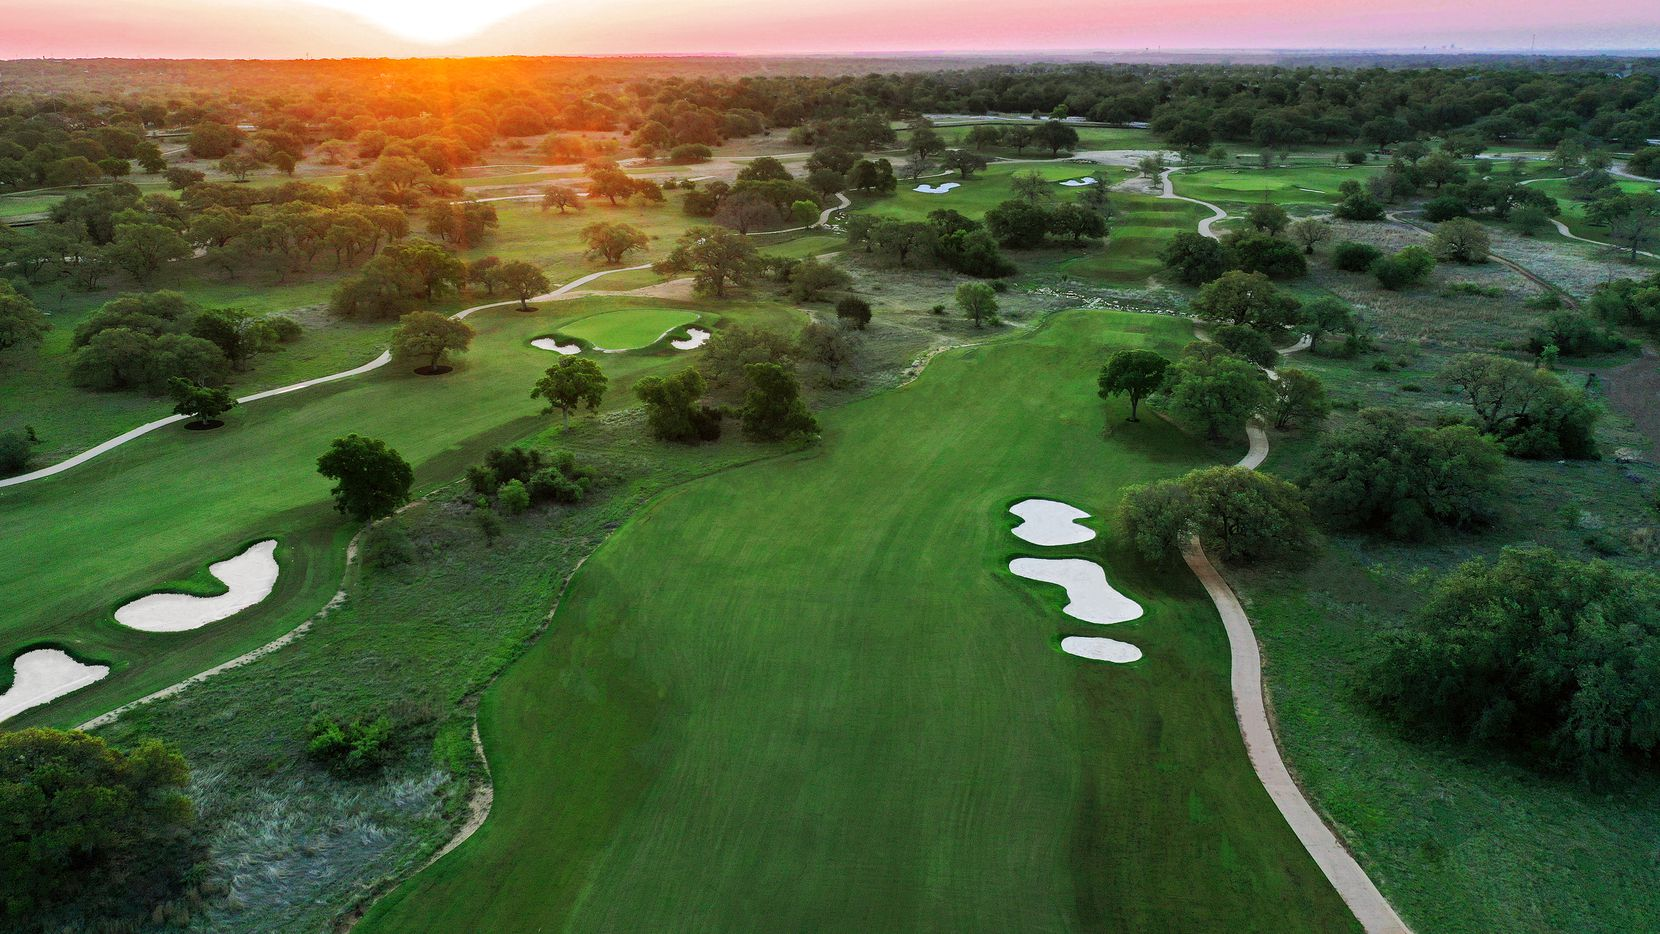 As the sun rises over Driftwood Golf and Ranch Club, several holes on the grassed-in front nine are visible. The holes primarily pictured are Holes 4 & 5 fairway (5 fairway and green on the left, No. 4 fairway and tees on the right). Holes 3 & 6 can be seen at the top of the image.